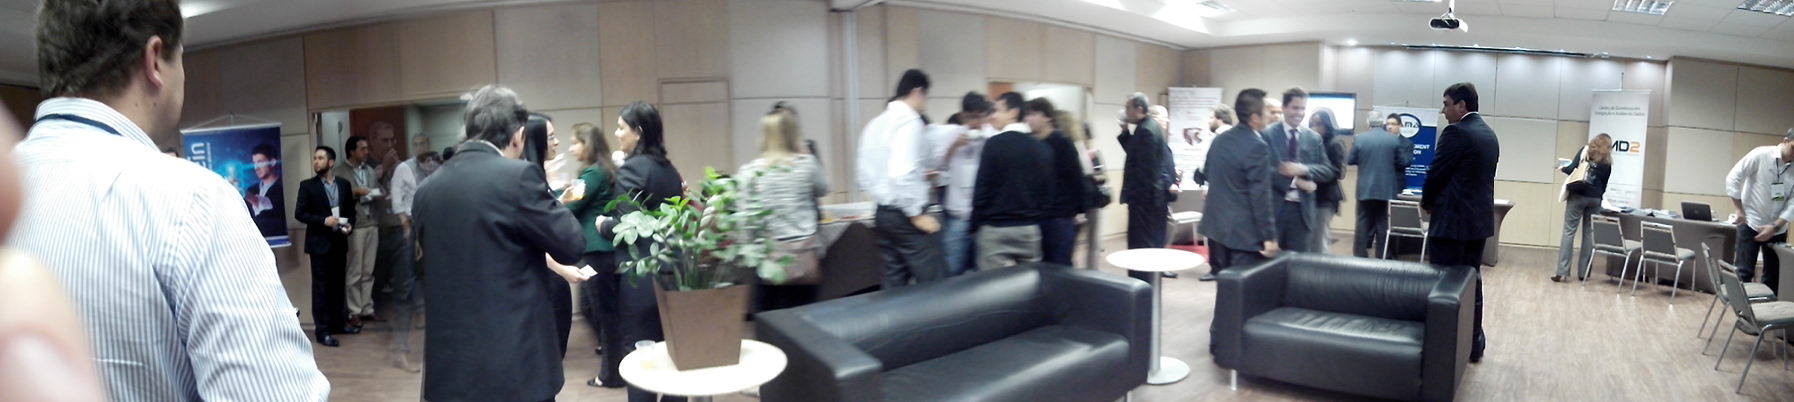 DMC Latam Coffee Break